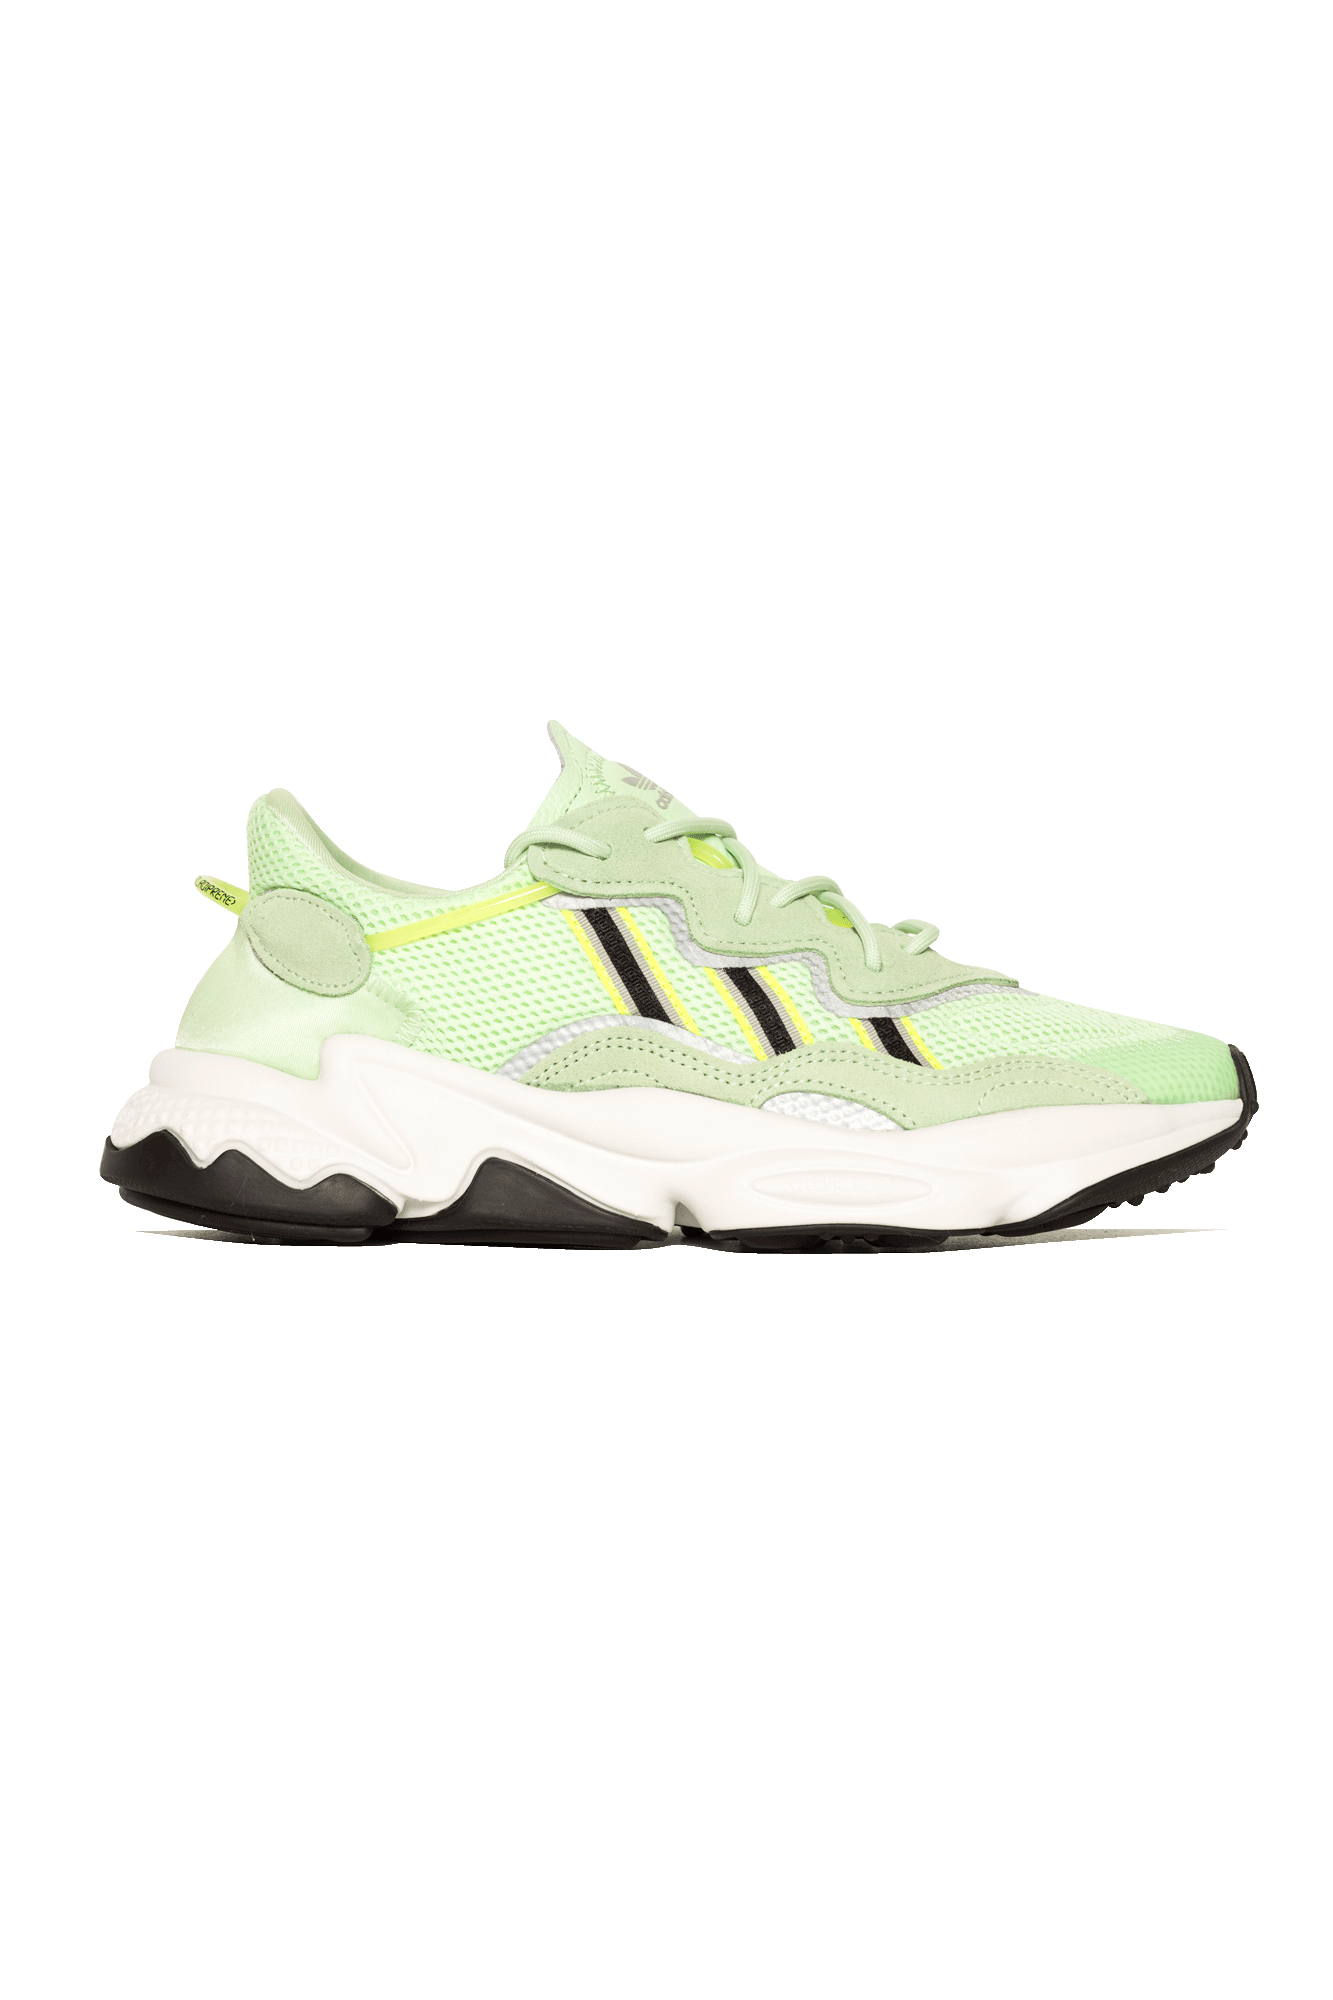 Sneakers Adidas Originals Ozweego Green - One Block Down